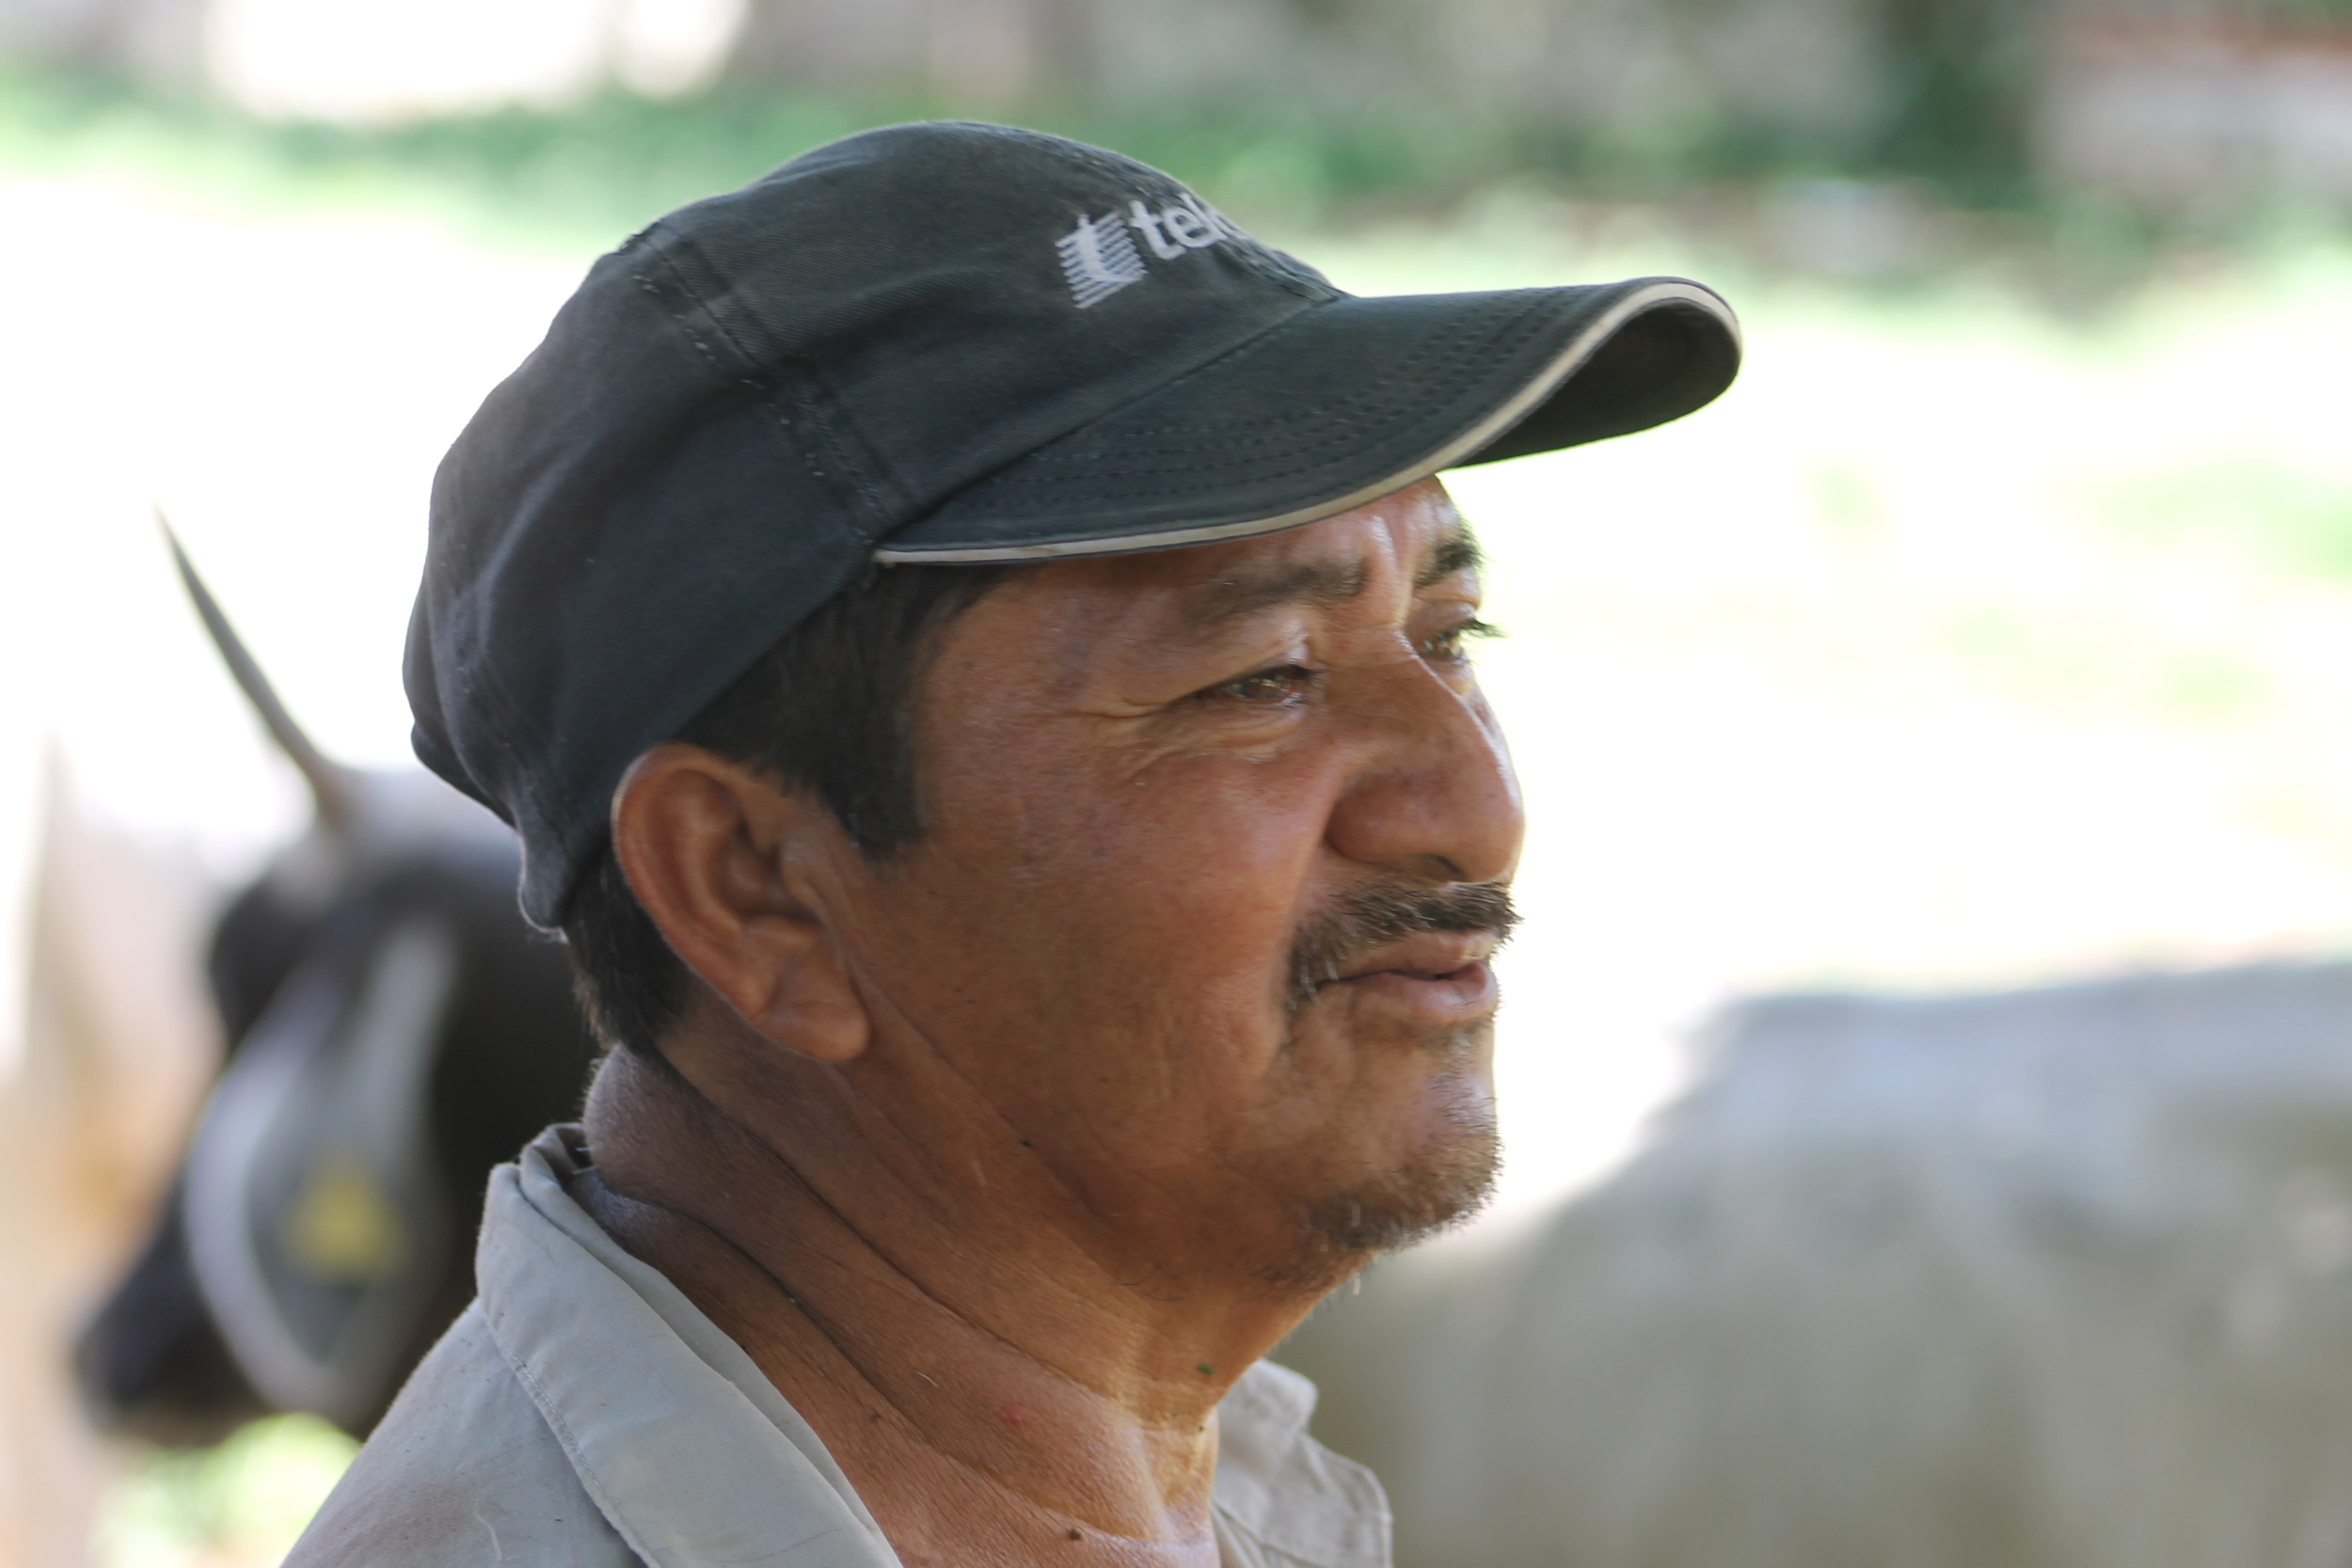 Don Pancho, our guide for the day